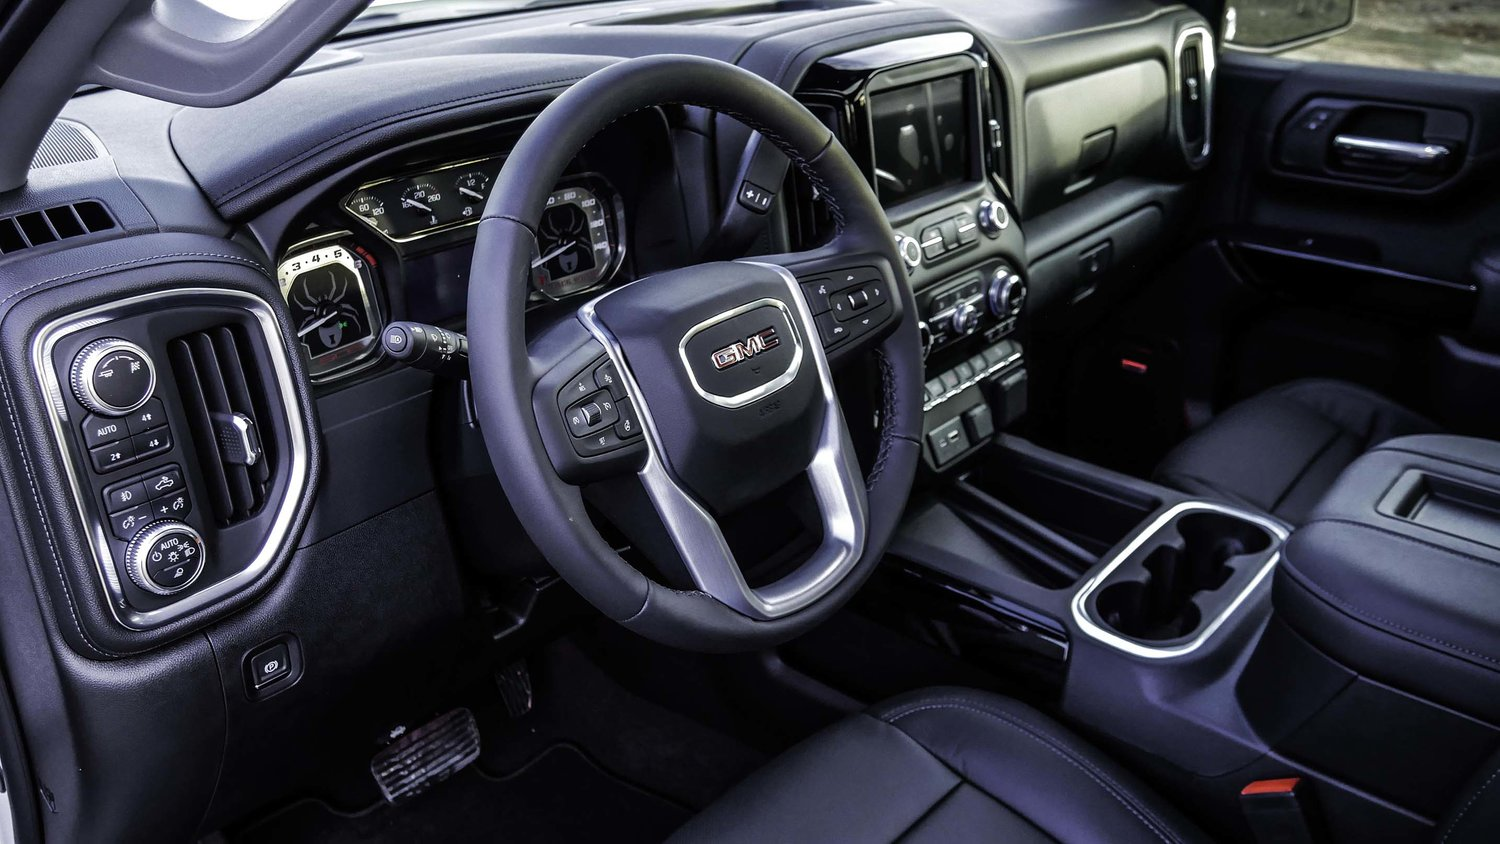 2019 GMC Sierra Black Widow Interior Dashboard